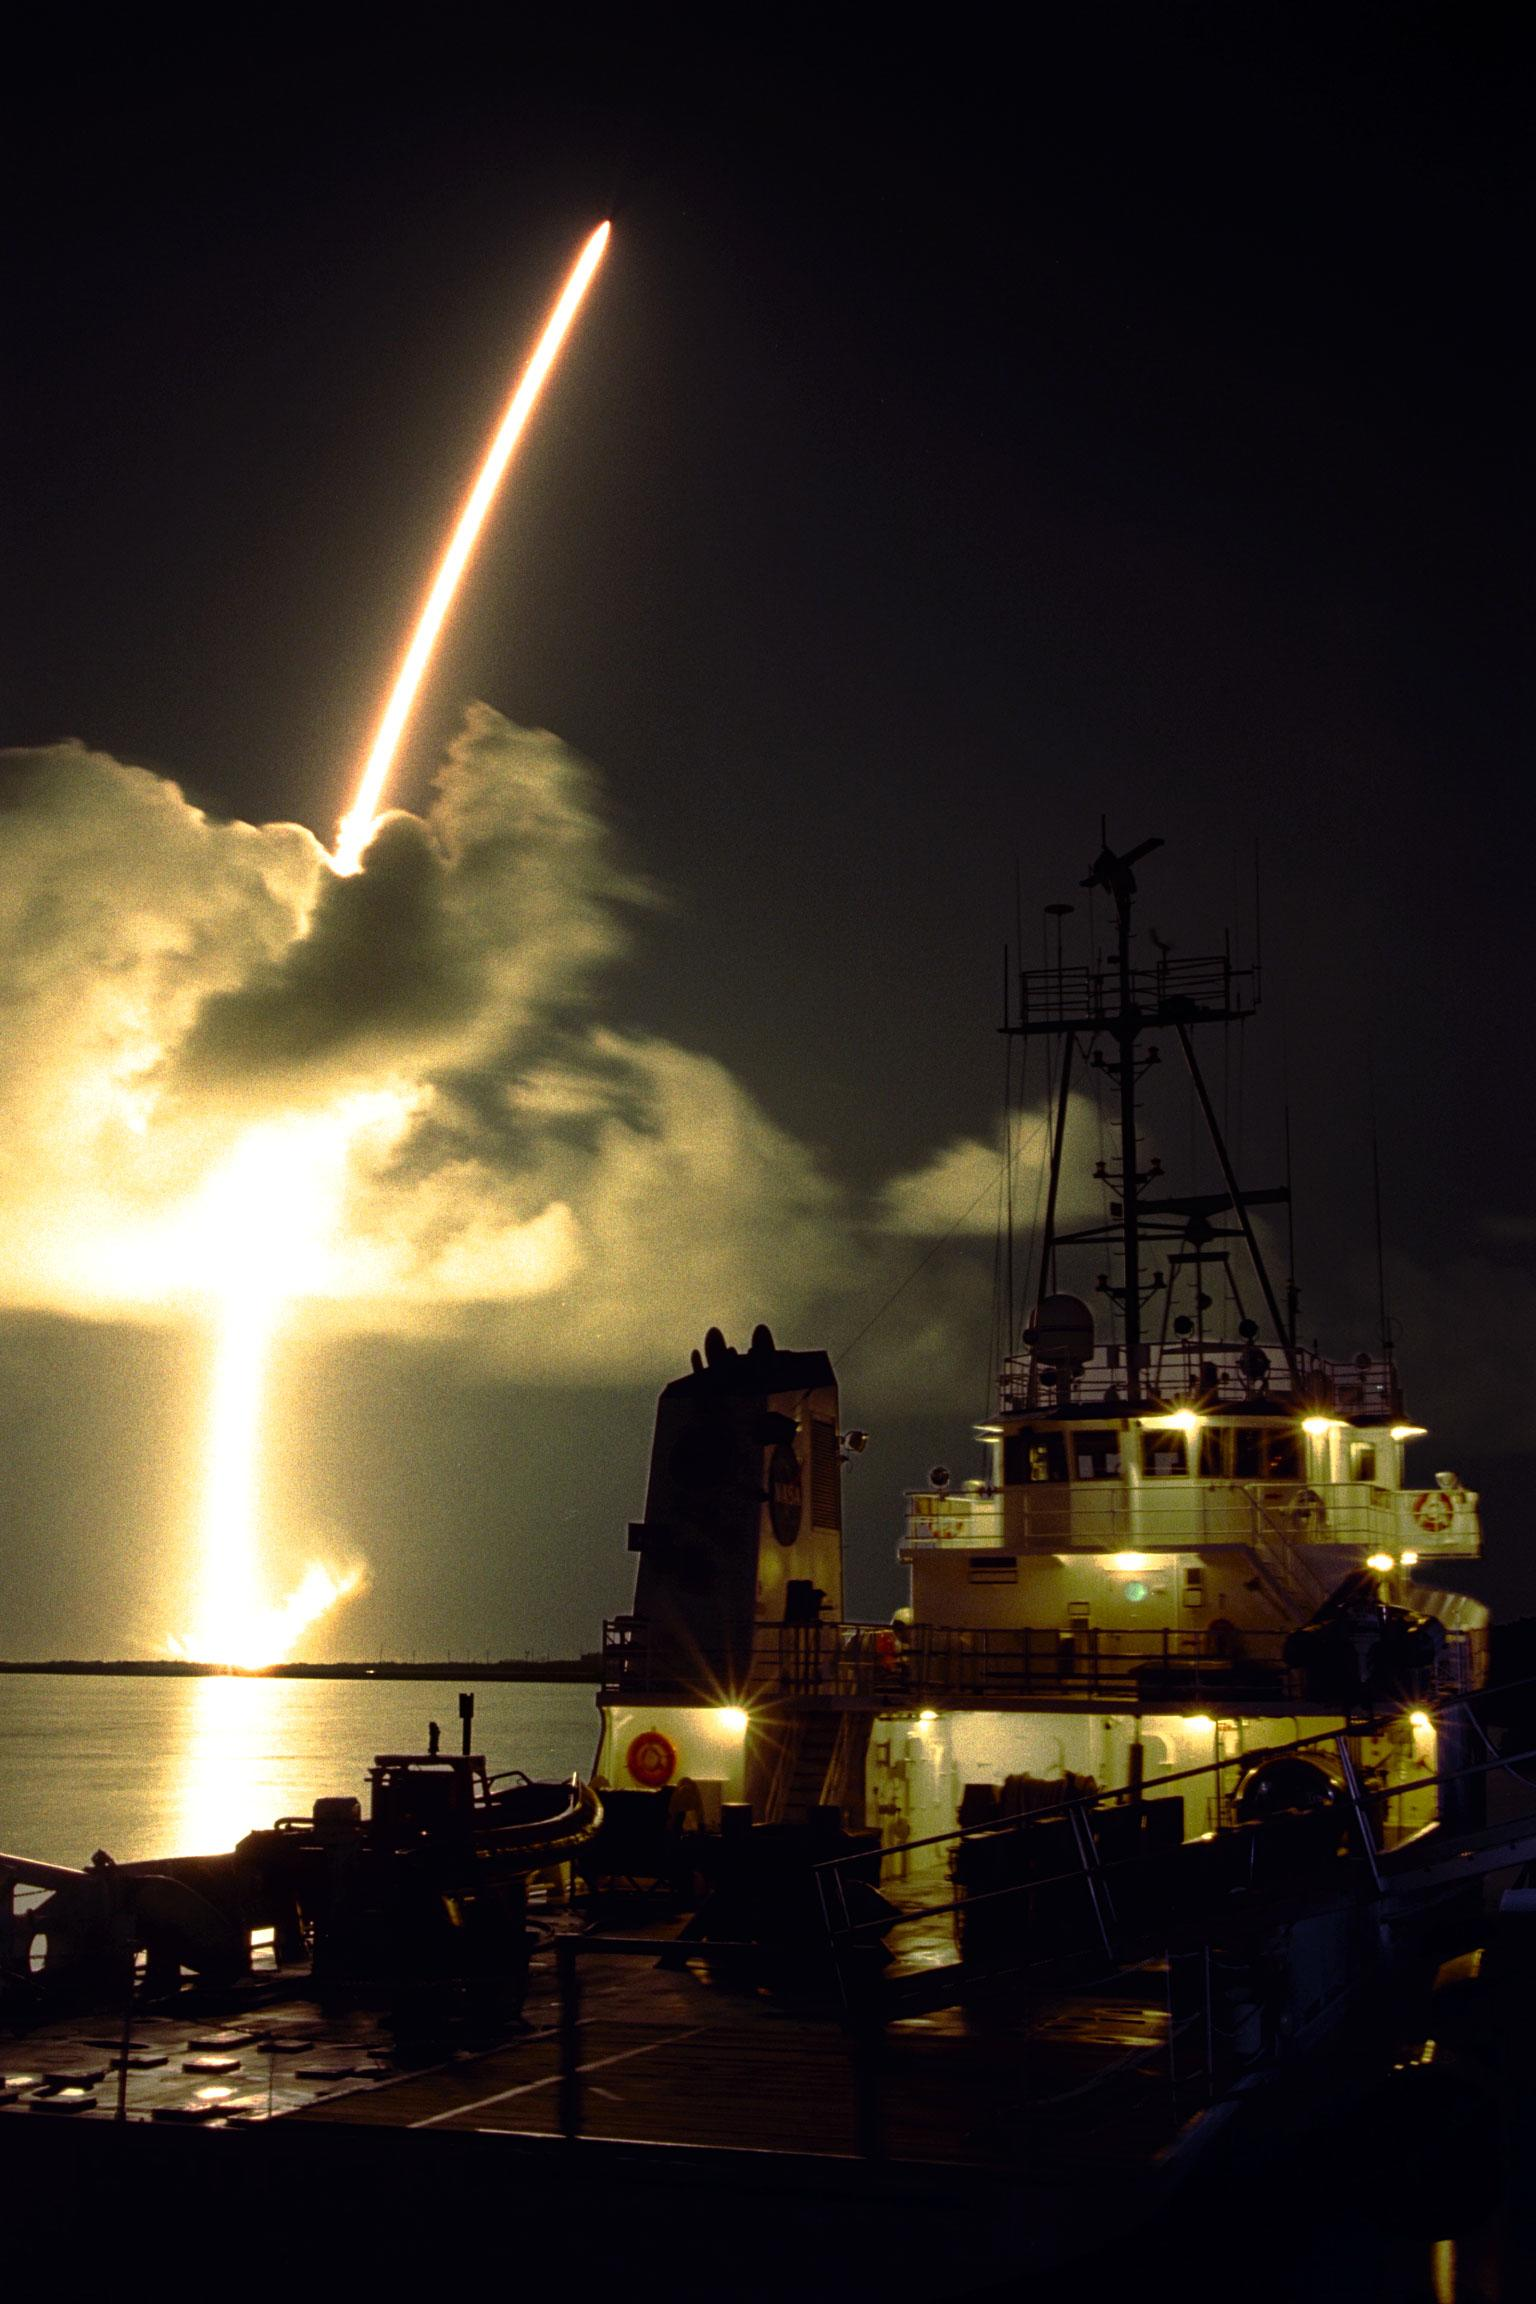 Color image of a rocket launch with a ship in the foreground.